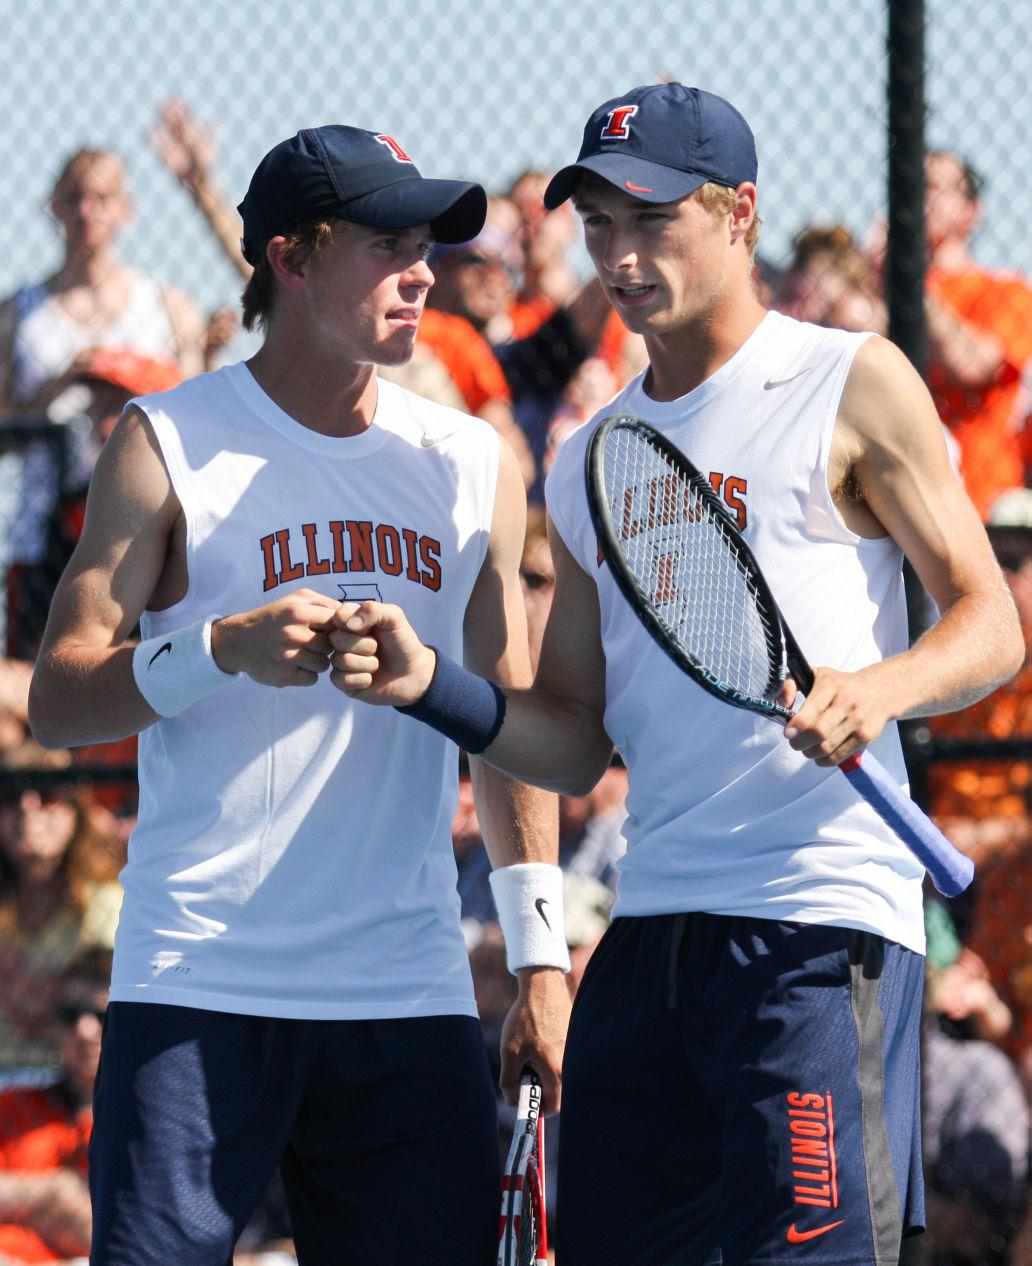 Illinois' Tim Kopinski and Ross Guignon briefly celebrate during the NCAA Tennis Regionals against the University of Memphis at Khan Outdoor Tennis Complex on Saturday, May 10, 2014. The duo took second at the ITA Intercollegiate Indoor National Championships this past weekend.